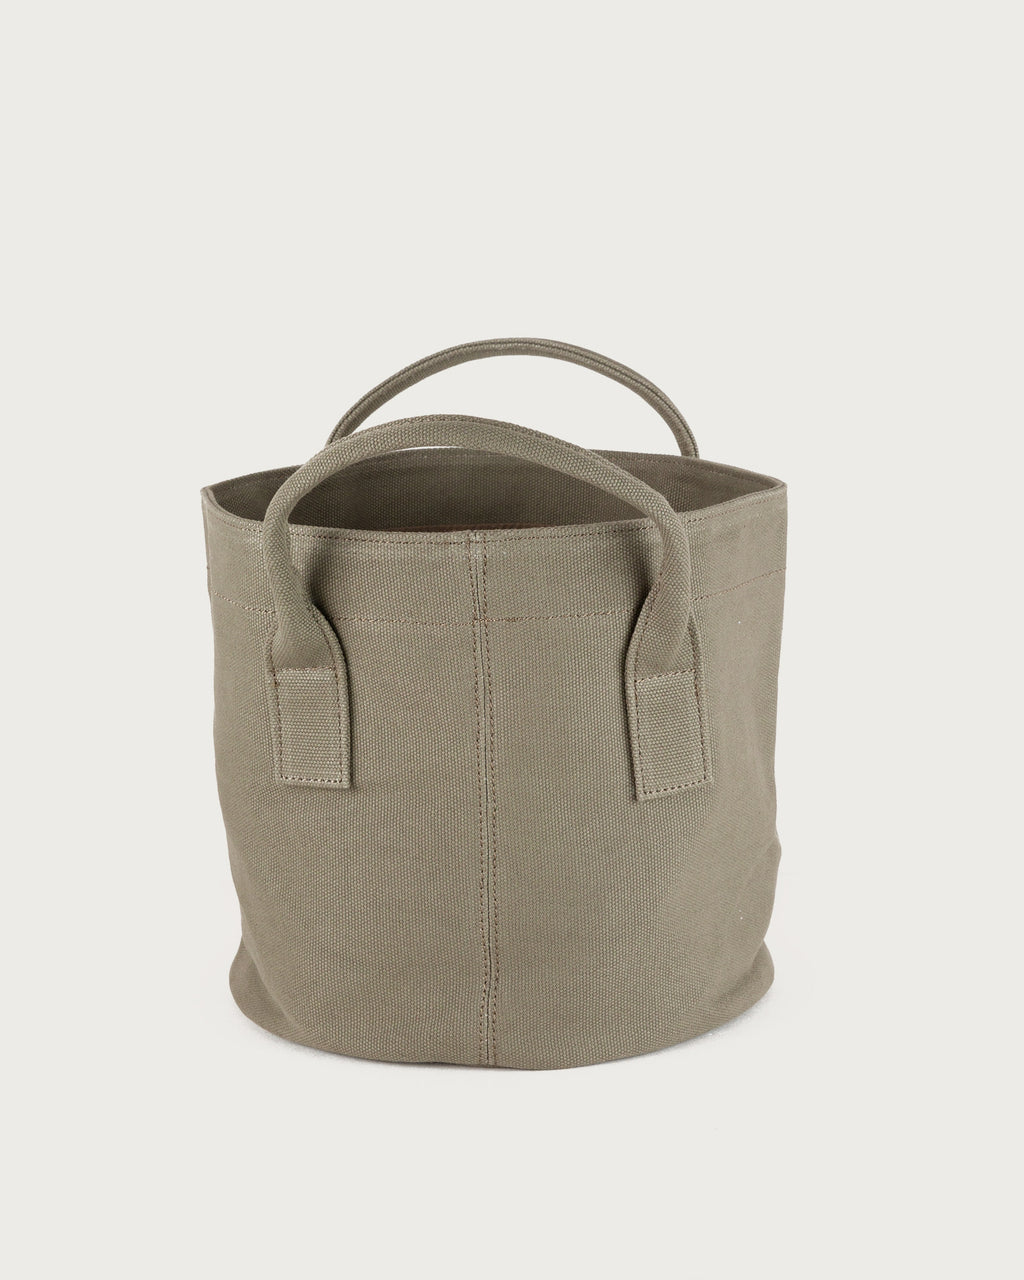 Satta Grow Pot Cover - Dark Olive | SATTA